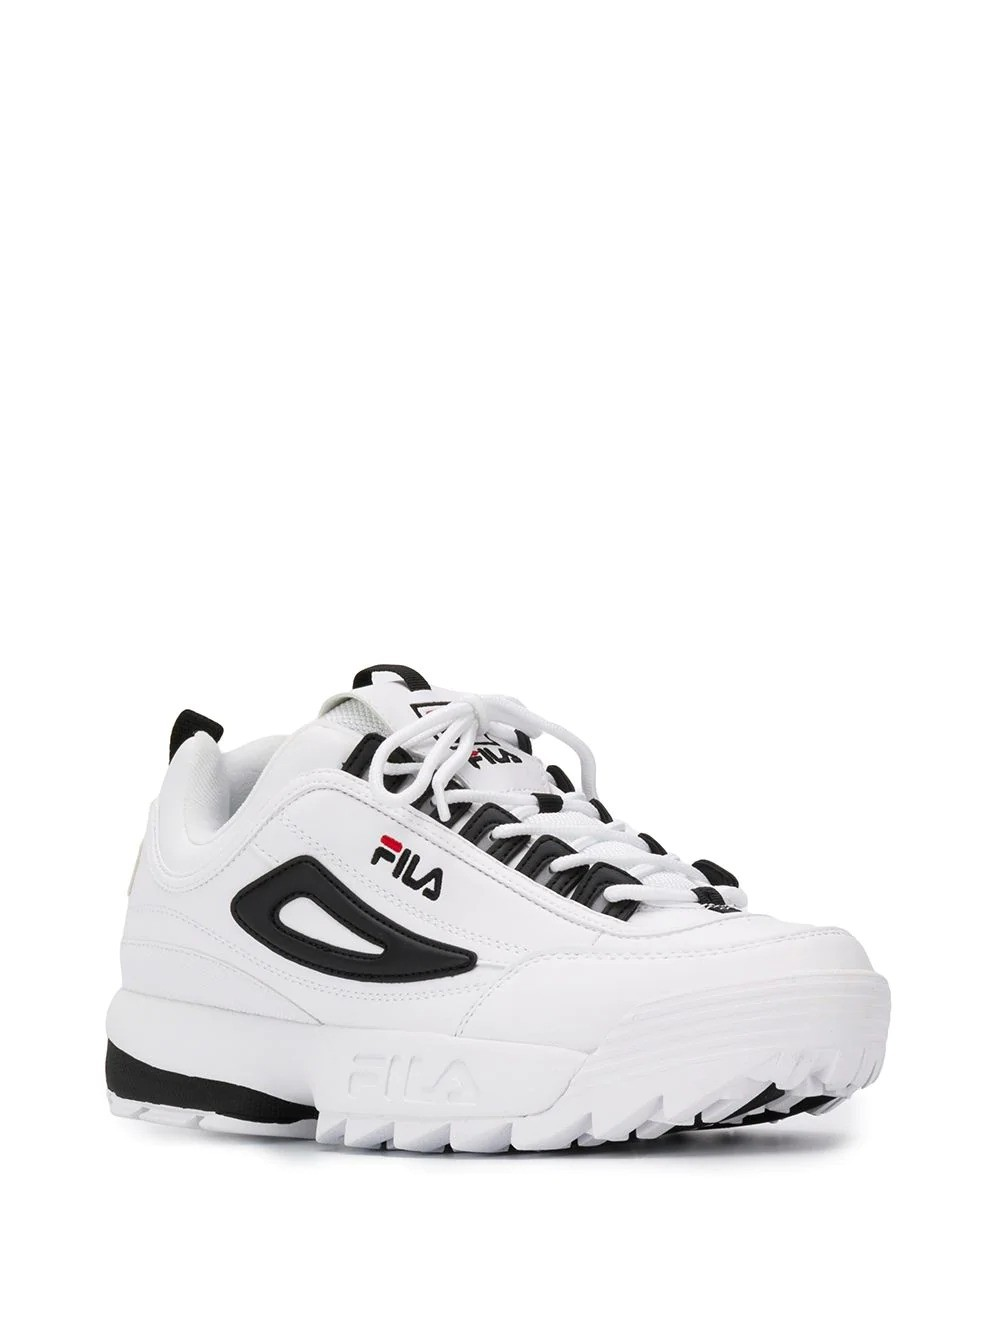 Disruptor Man Cb Sneakers Fila Low wiXkZlPTOu